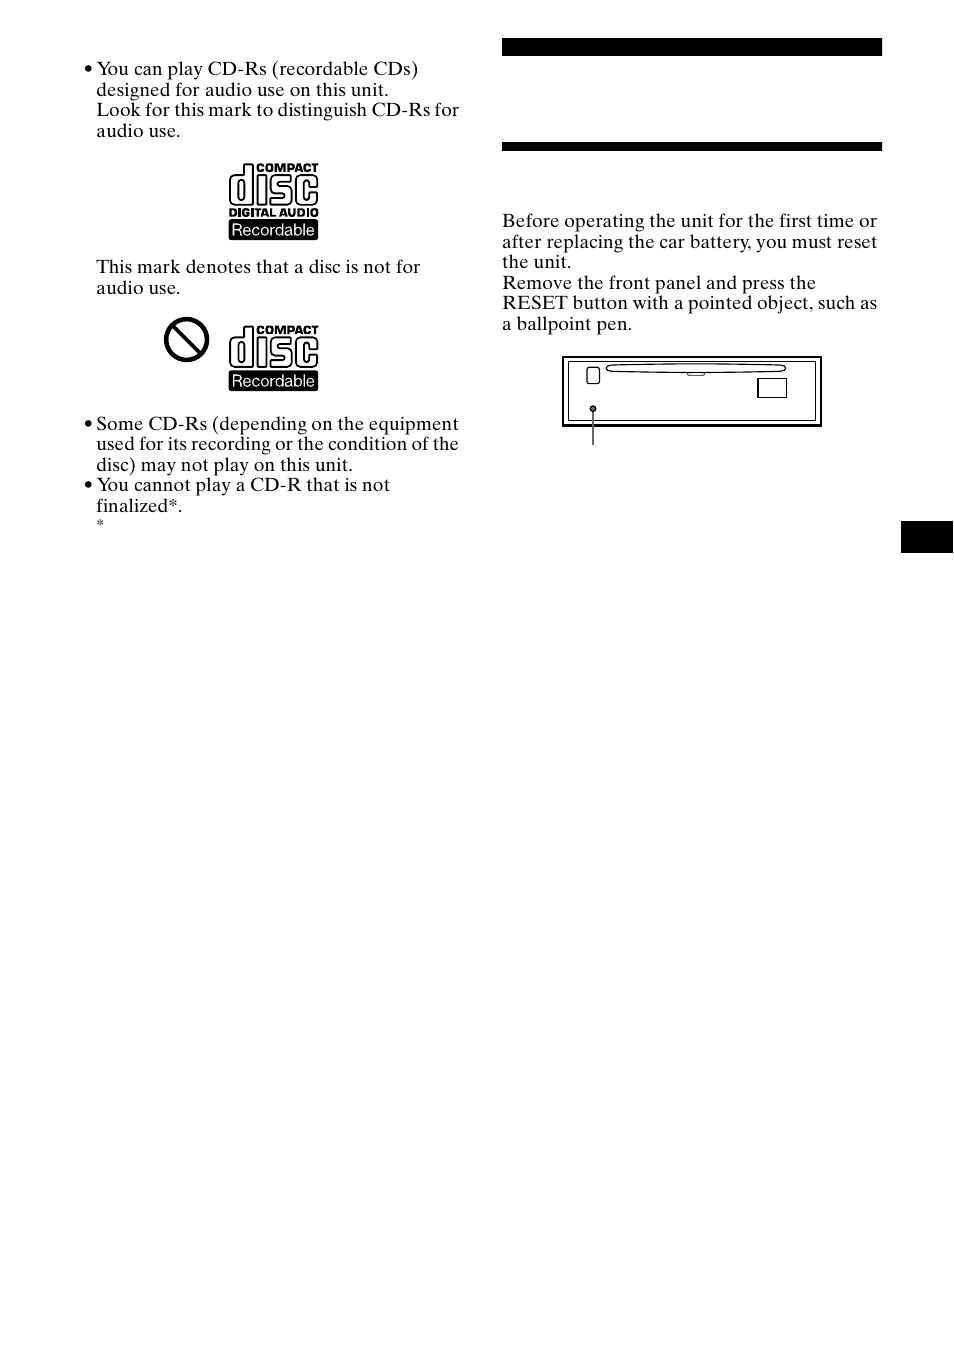 getting started, resetting the unit sony cdx ca650x user manual Sony Stereo Wire Harness Diagram getting started, resetting the unit sony cdx ca650x user manual page 7